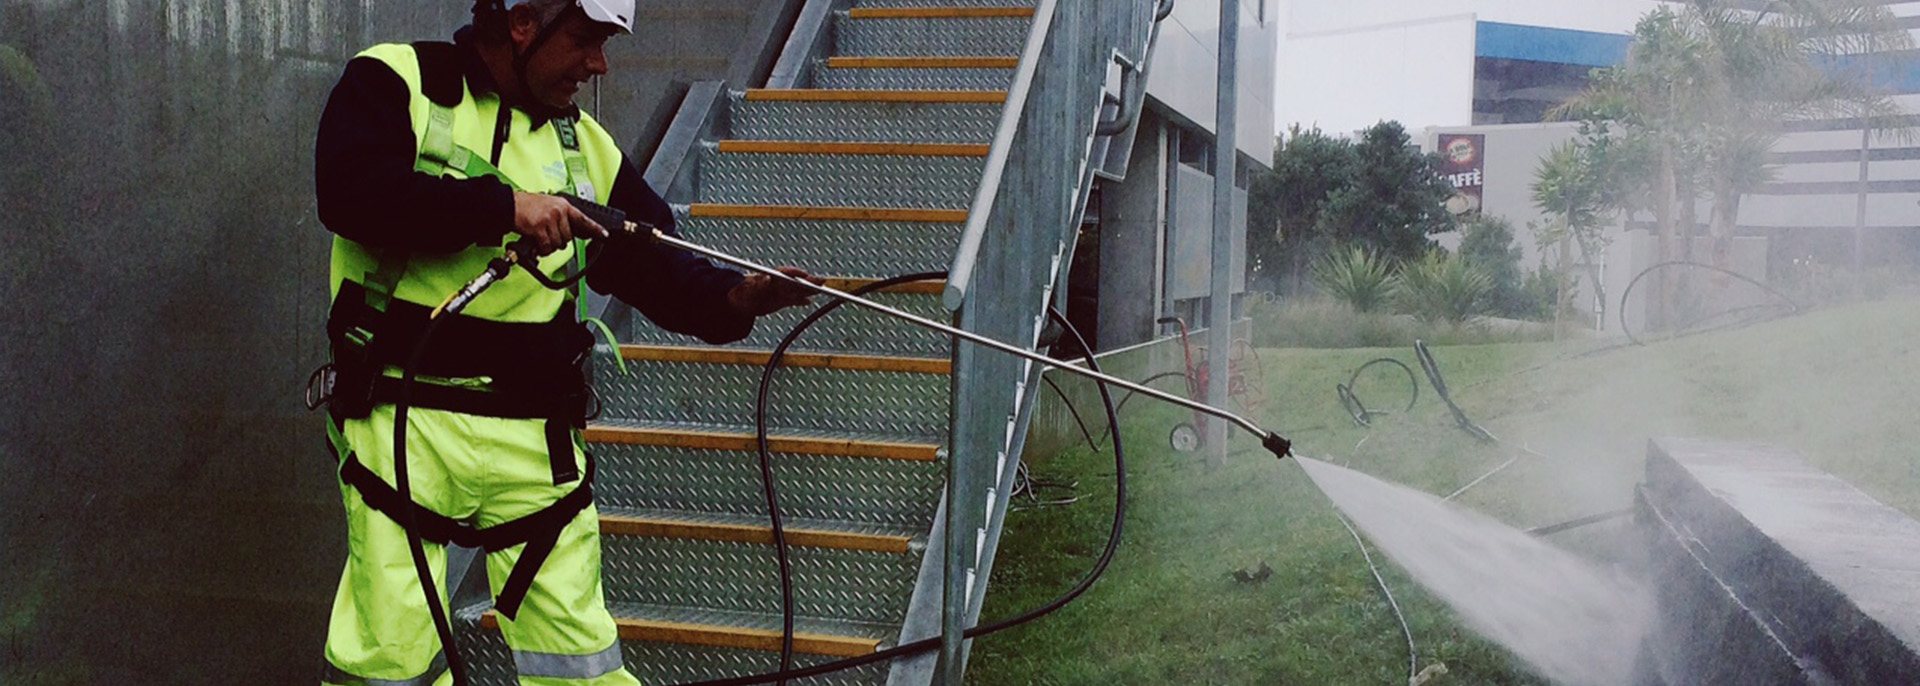 Water Blasting Auckland Company Services Super City